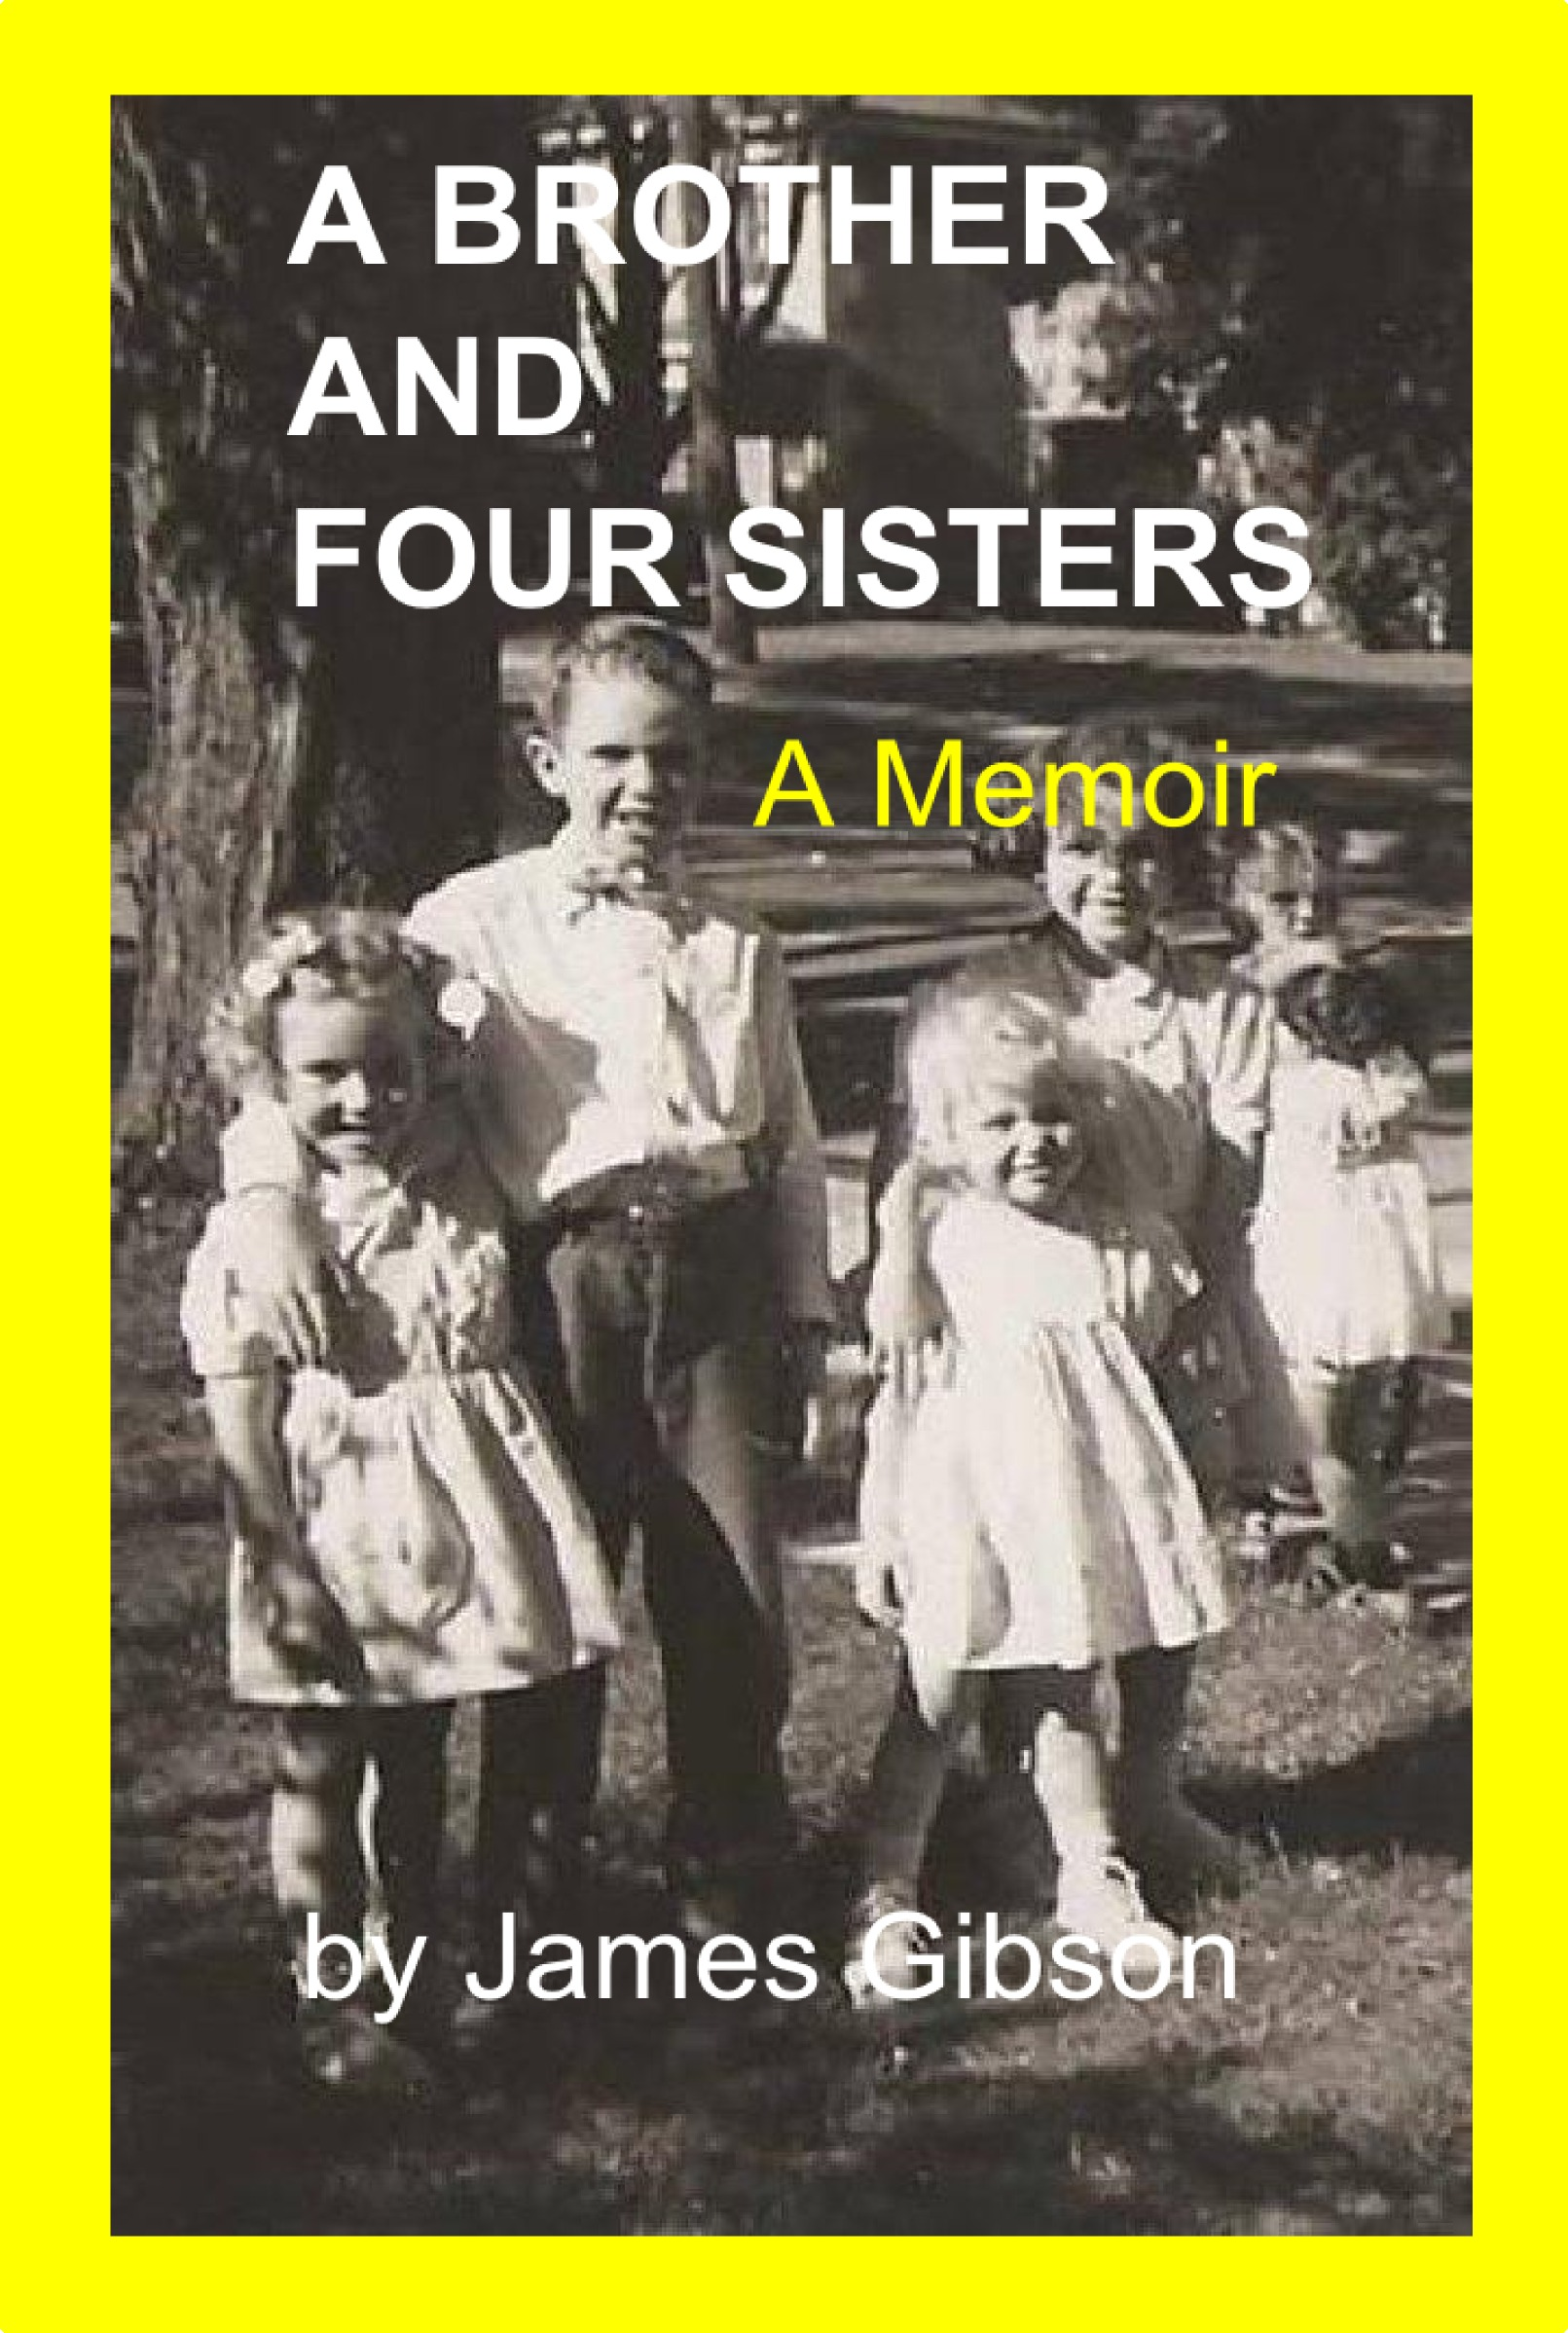 A Brother and Four Sisters